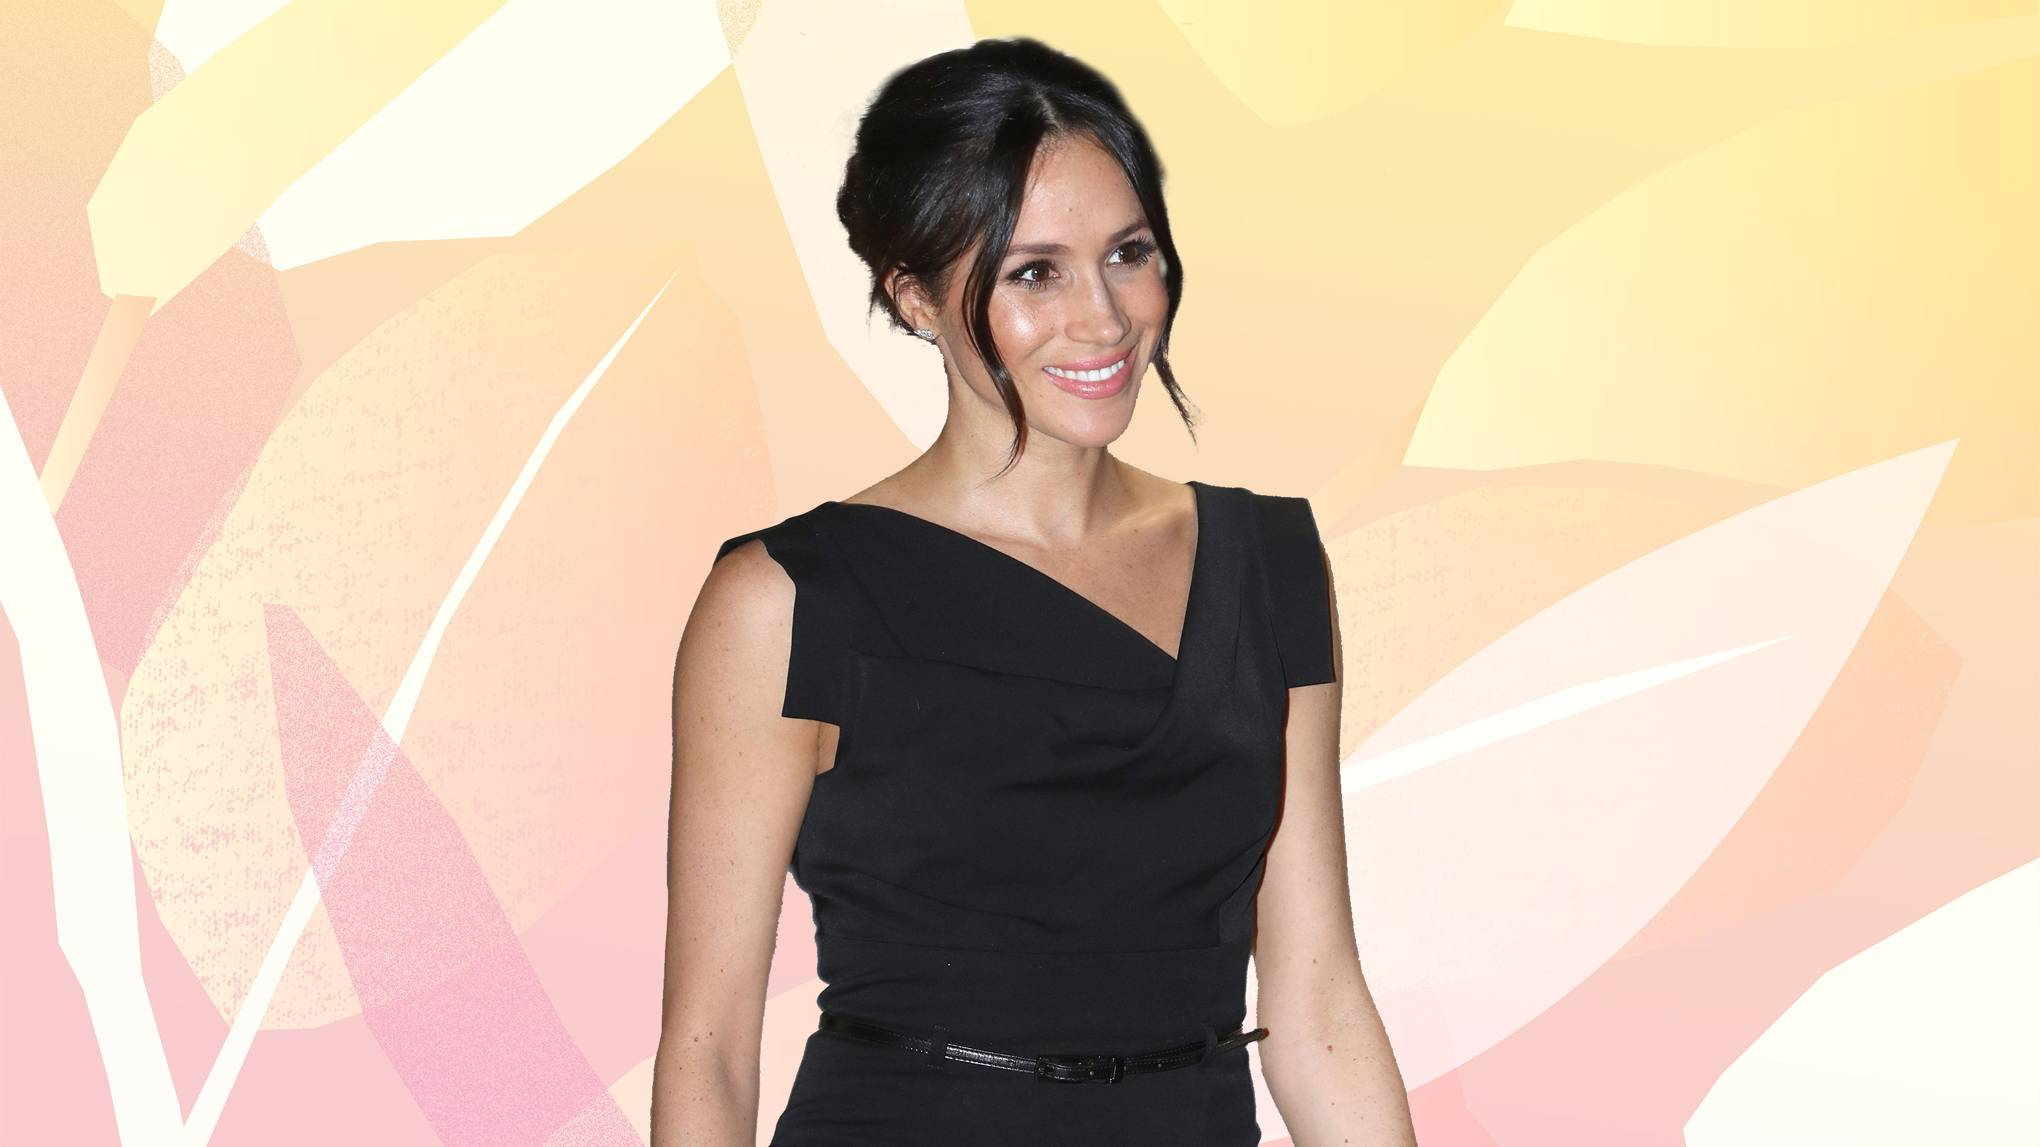 2b1139793ed Meghan Markle s Black Dress Looks Familiar For This Unexpected Reason